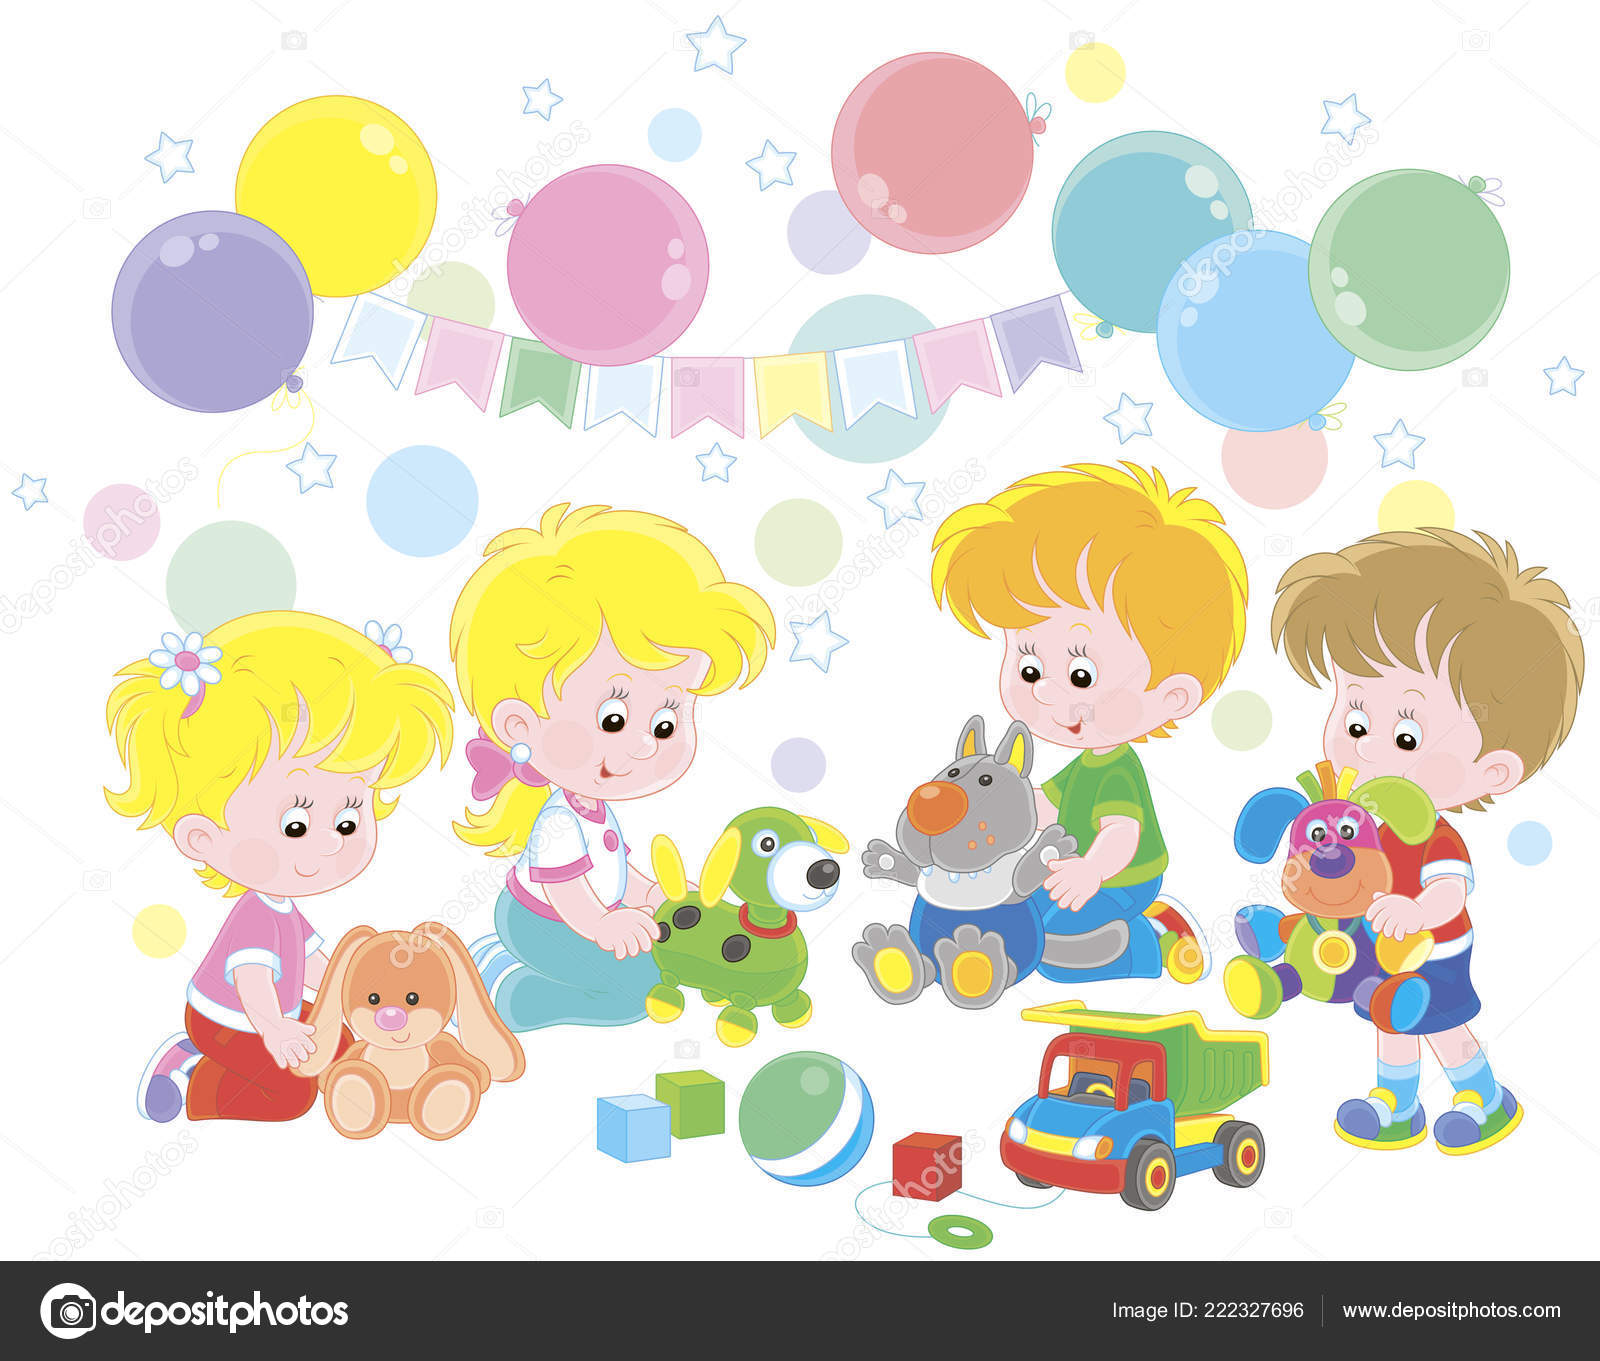 Colorful Playroom: Small Children Playing Colorful Soft Toys Playroom Vector